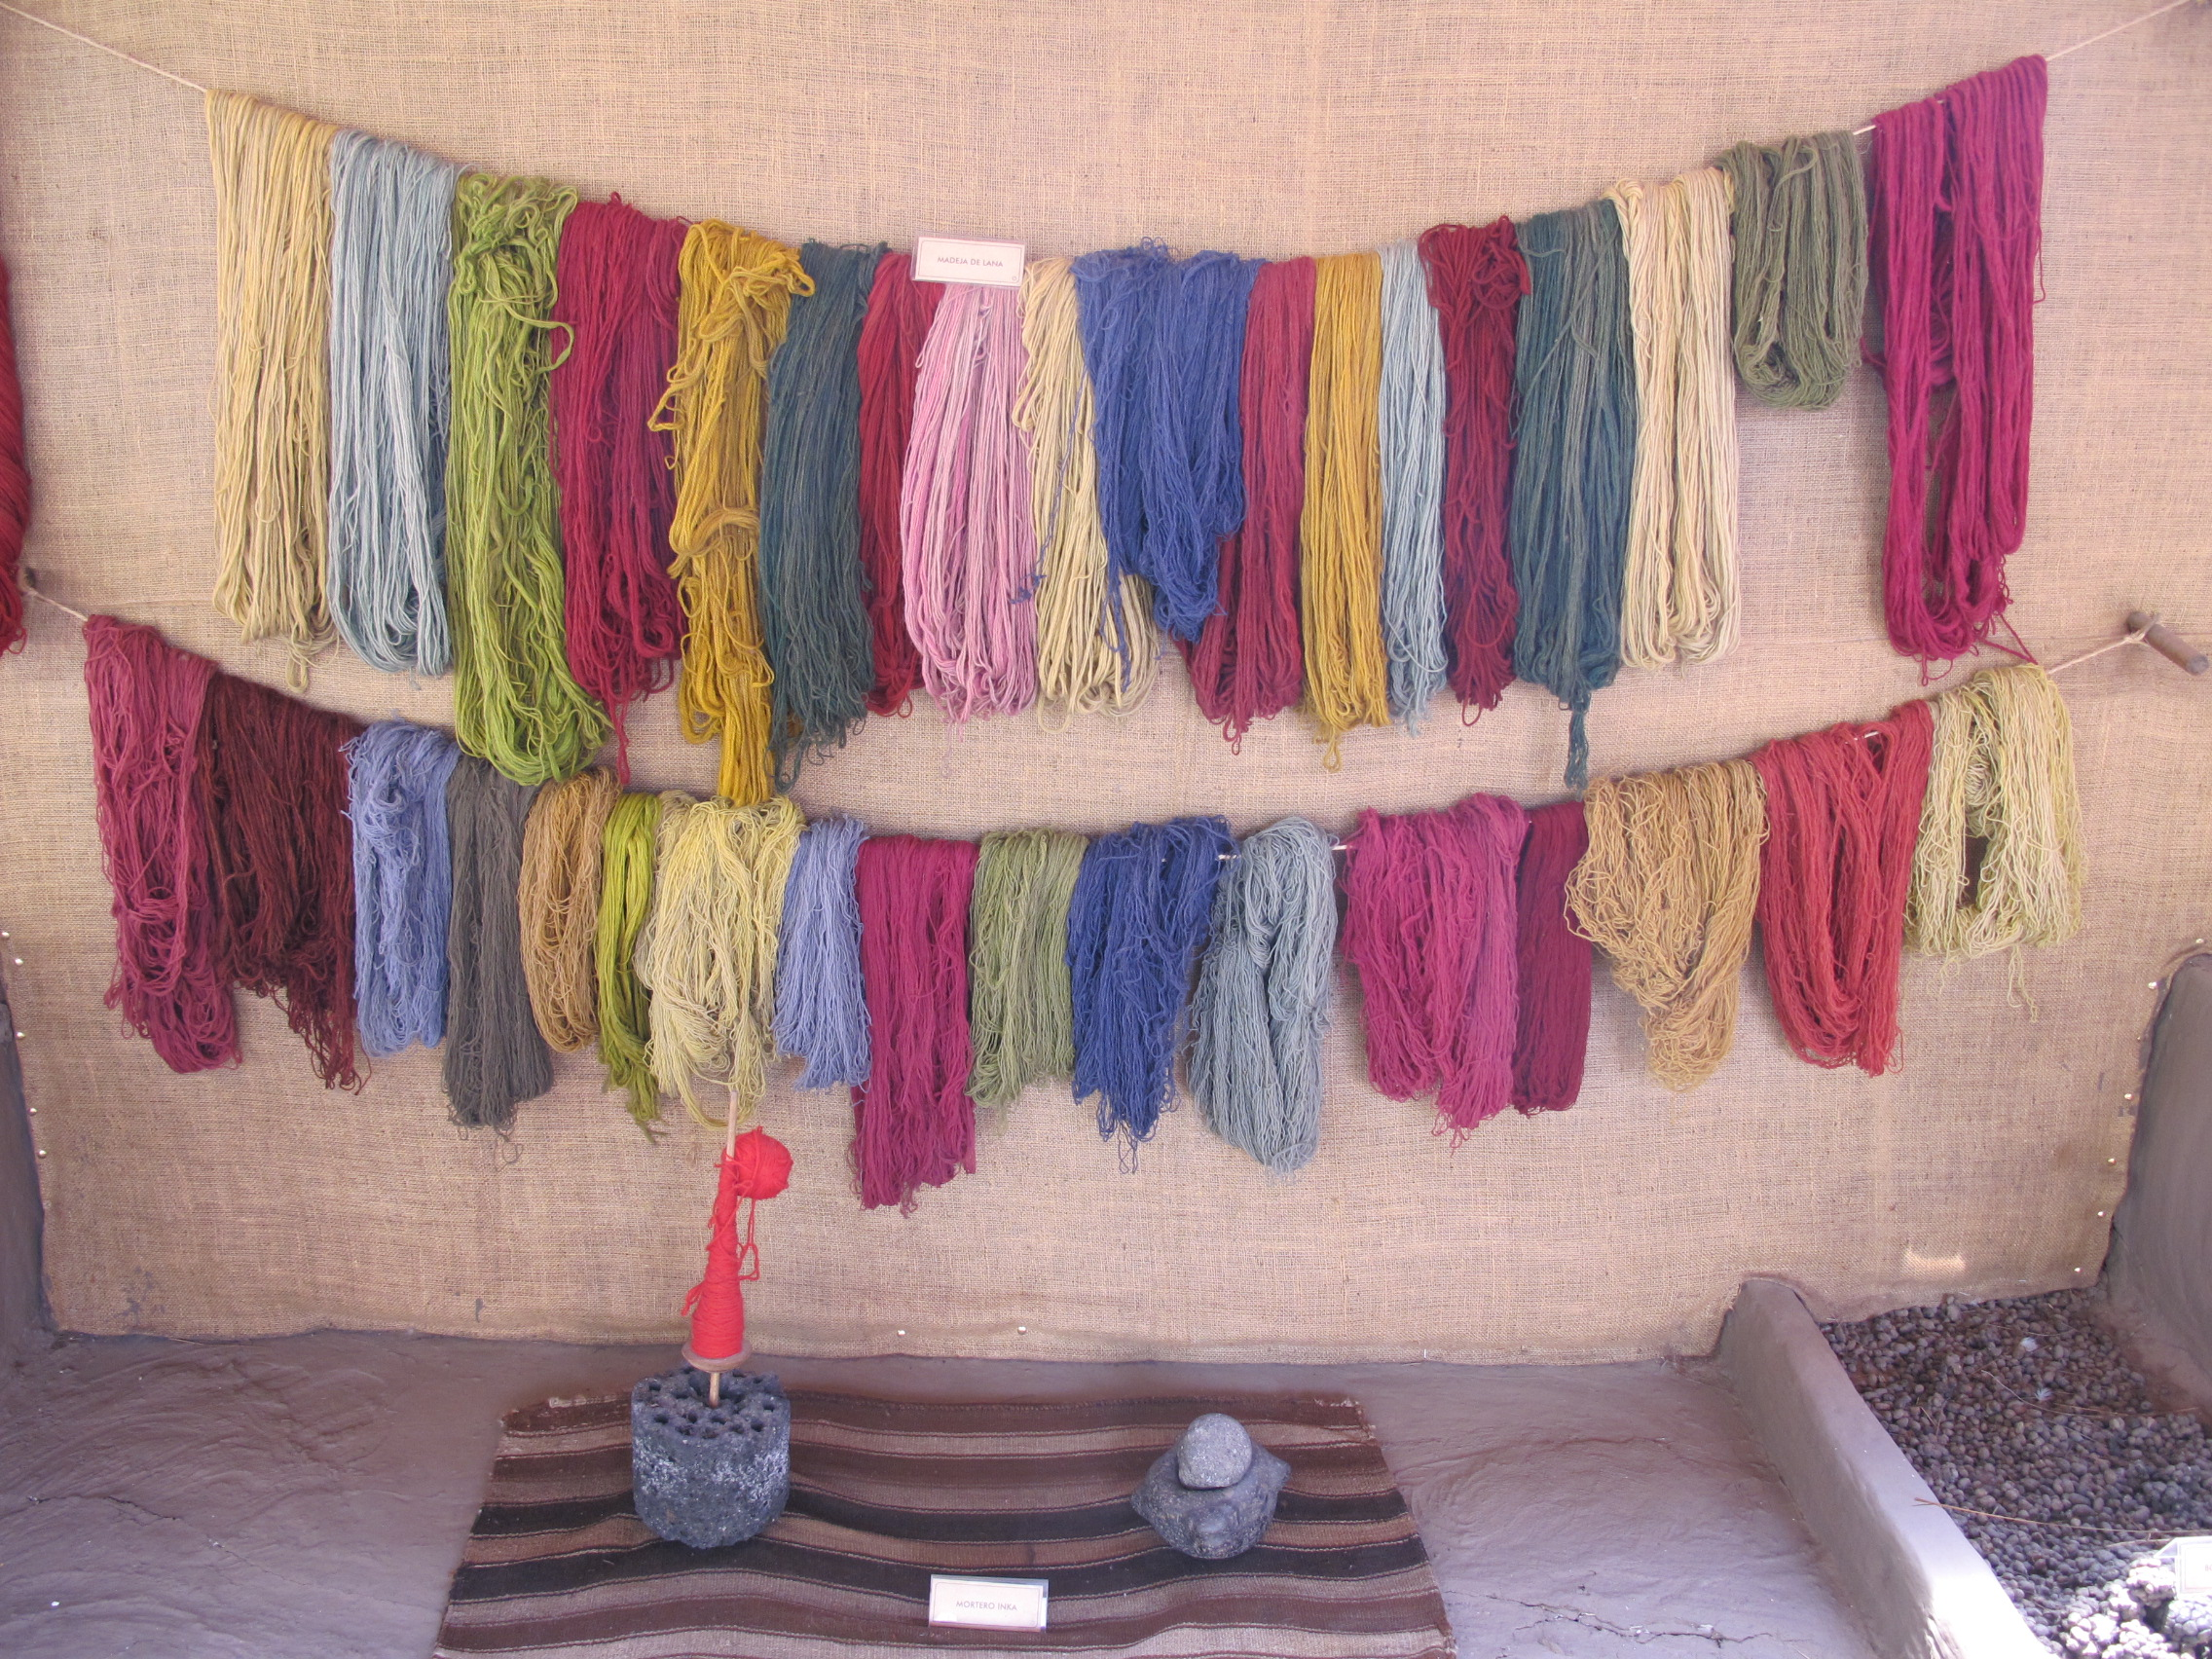 The natural colors used for weaving